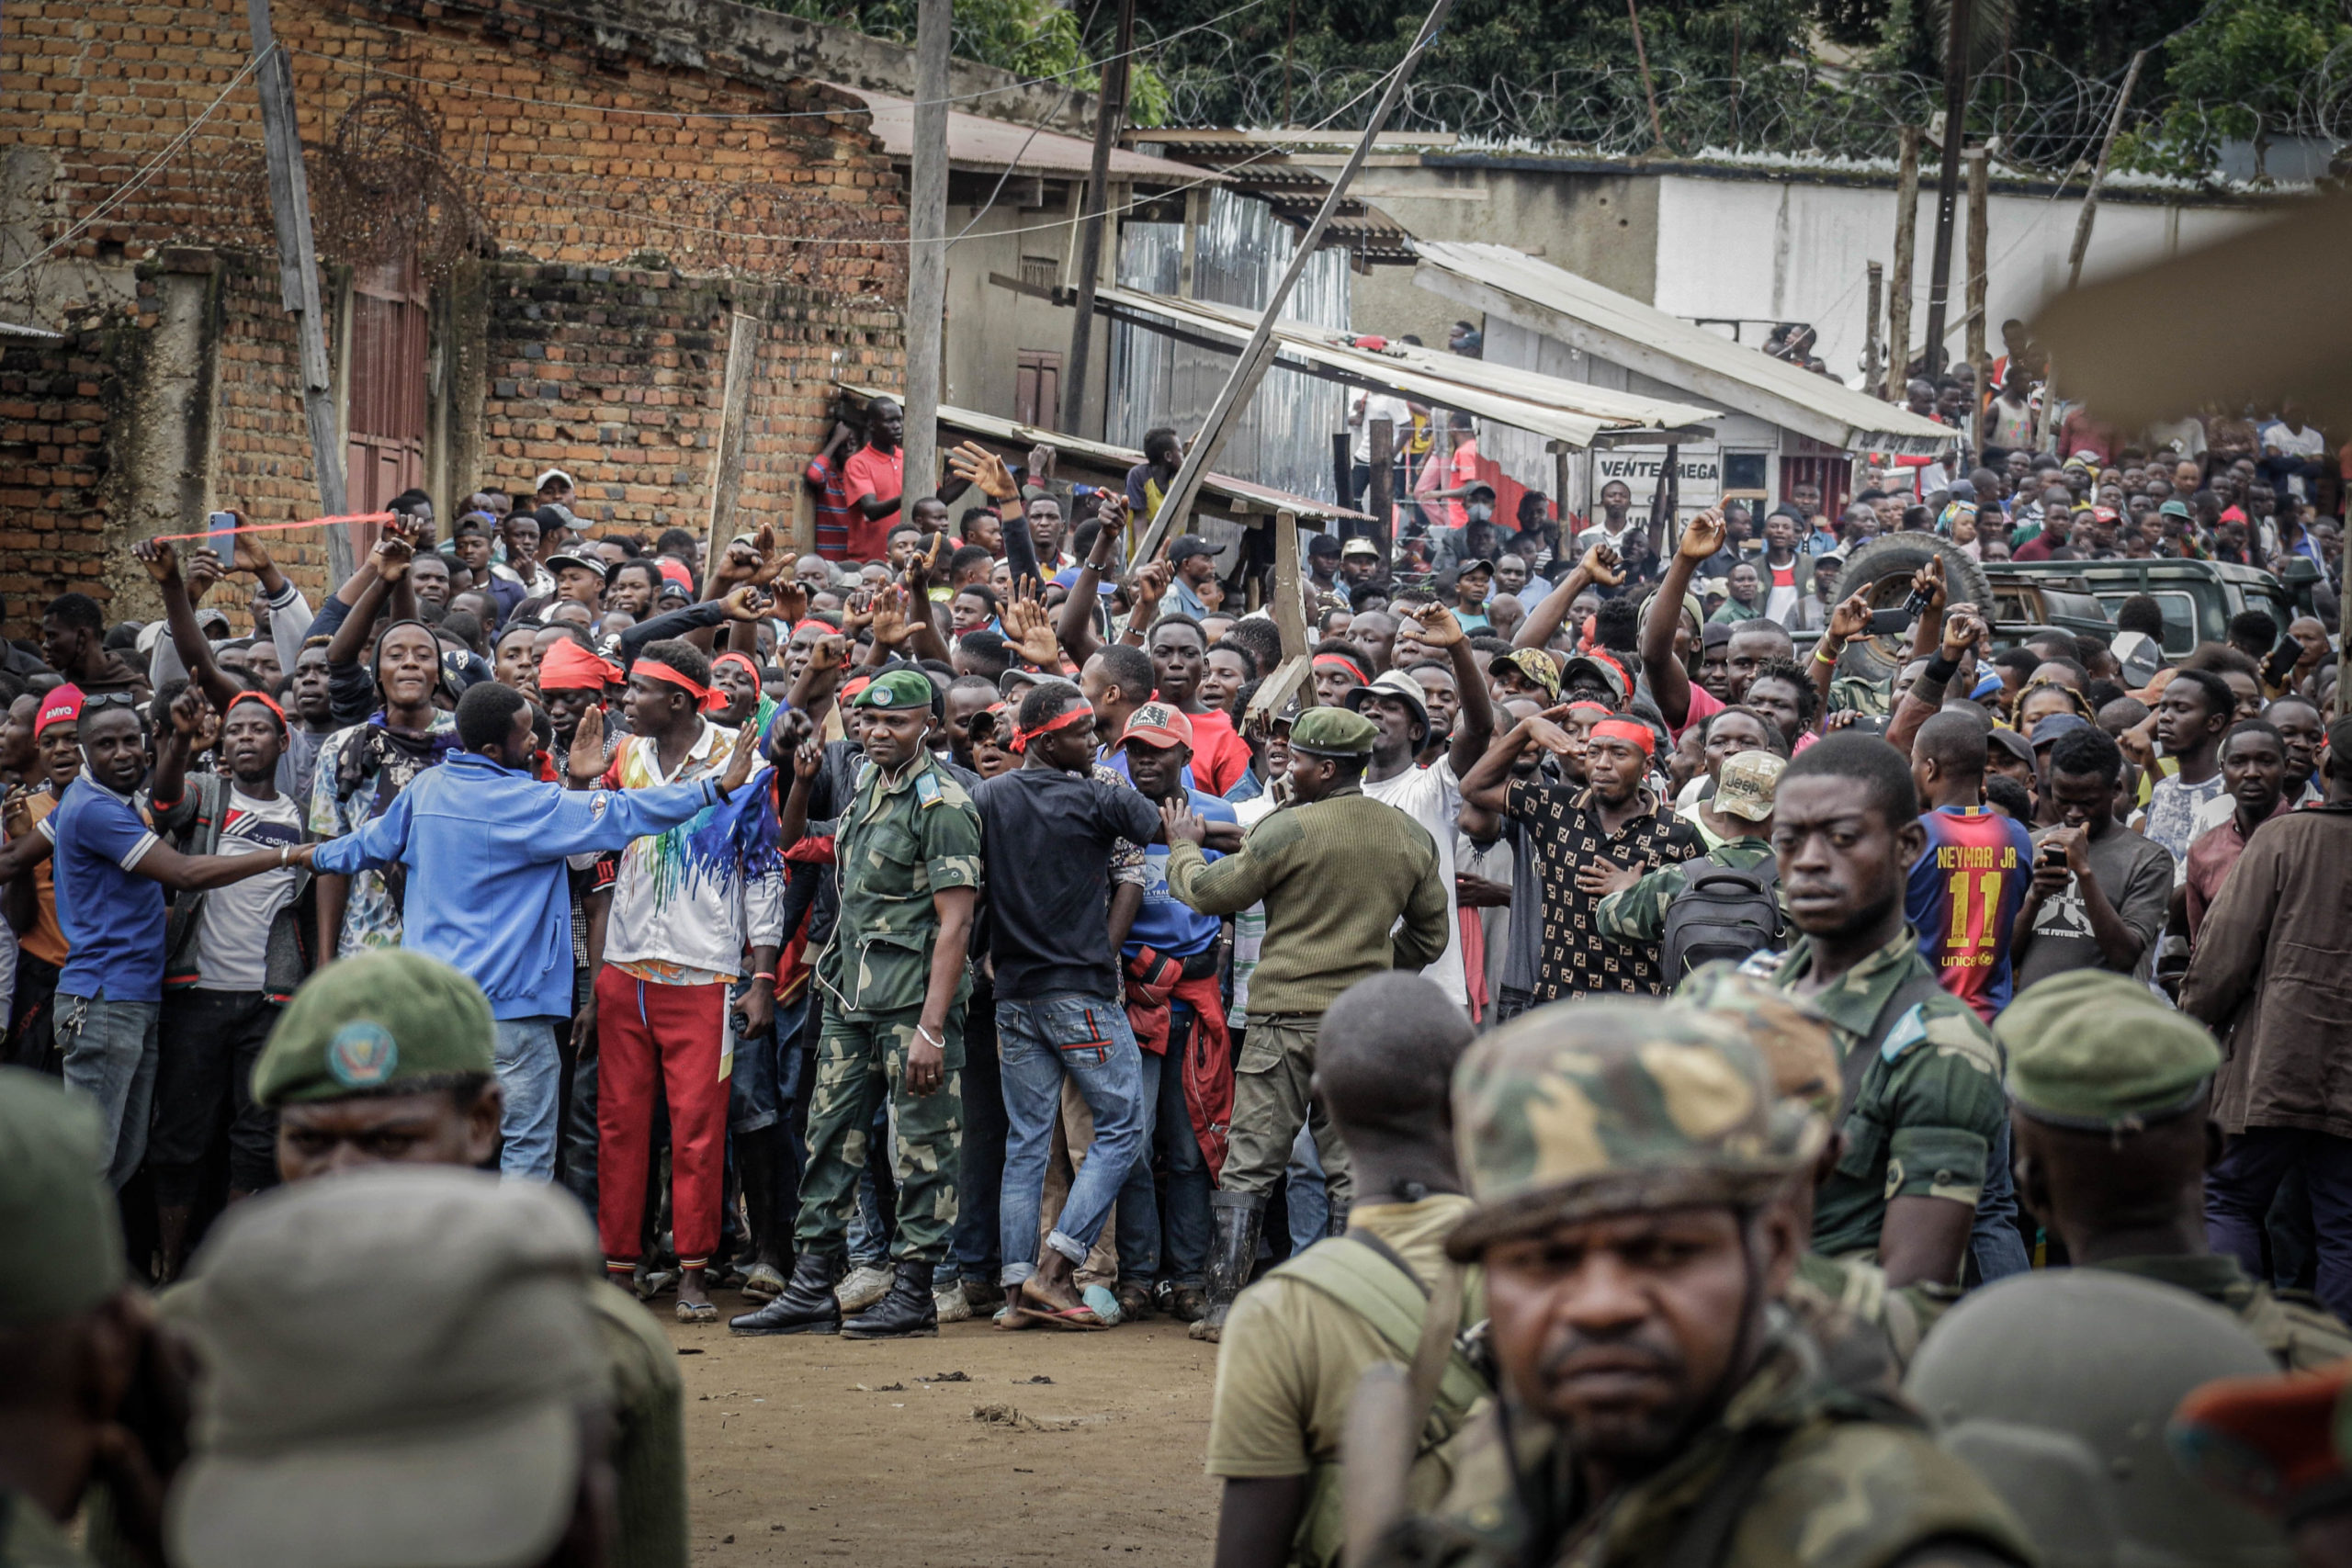 Bunia, DRC, September 4, 2020. Government soldiers take up positions between a crowd of youths angry that 100 heavily armed militiamen were able to enter the eastern Congolese city of Bunia last Friday. © Dieudonné Dirole for Fondation Carmignac